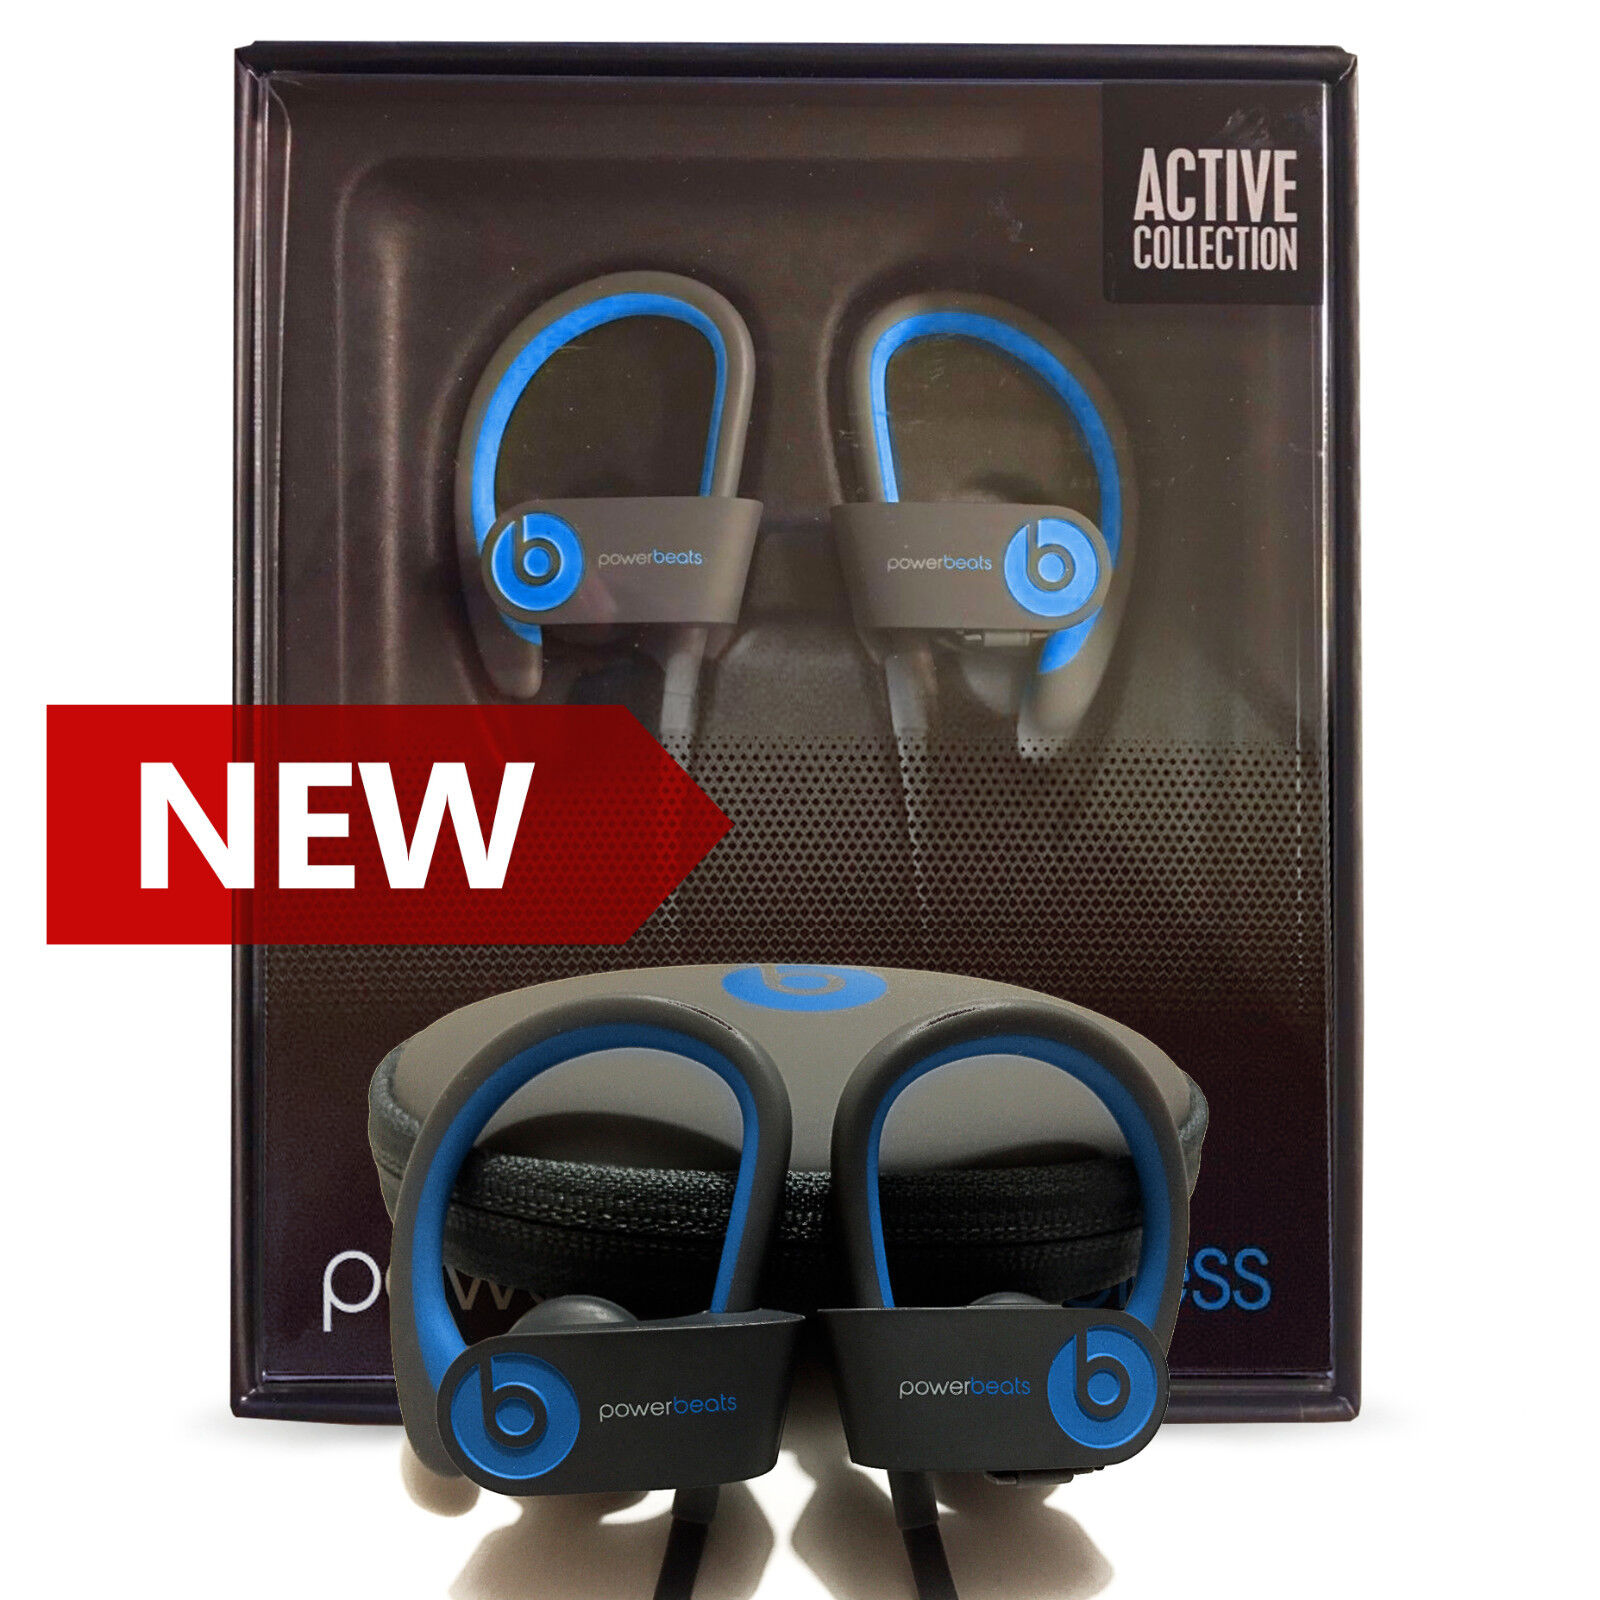 Beats By Dre - Beats Powerbeats 2 Wireless by Dr. Dre Bluetooth Sport Headphones FLASH BLUE NEW